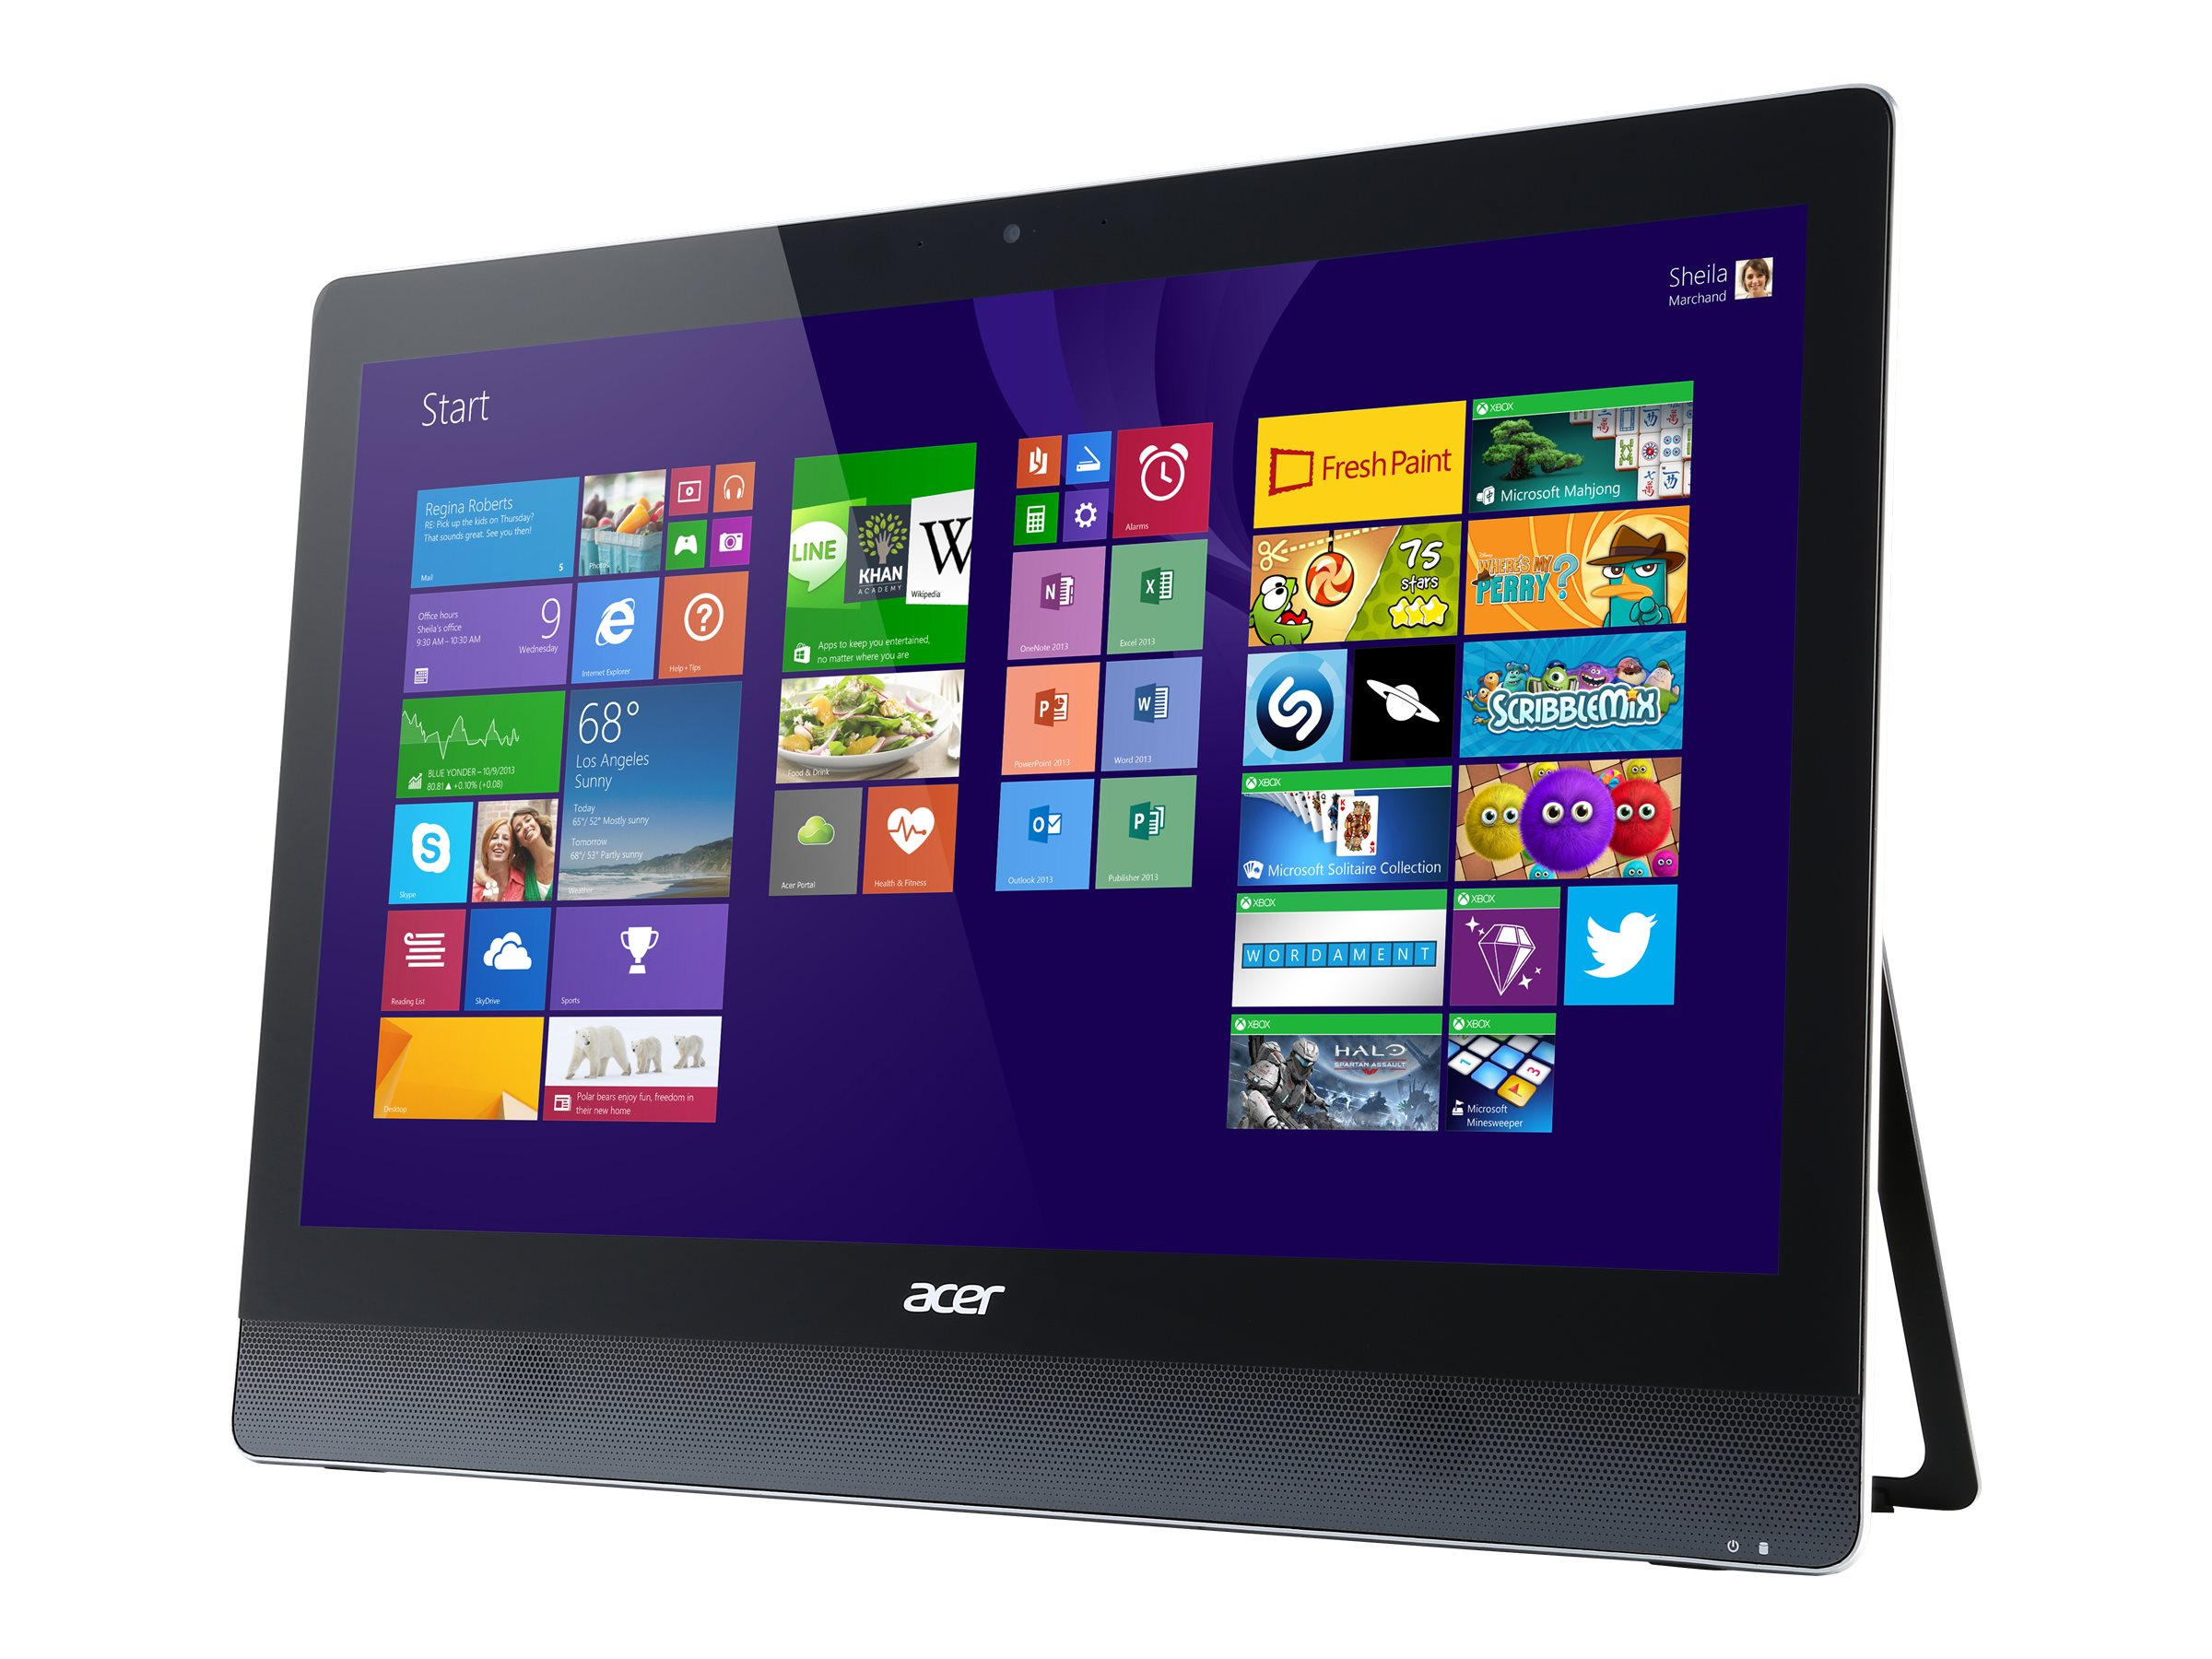 Acer Aspire U5-620 AIO Core i5-4210M 2.6GHz 8GB 1TB HD4600 DVD SM GbE ac BT WC 23 FHD MT W10H64